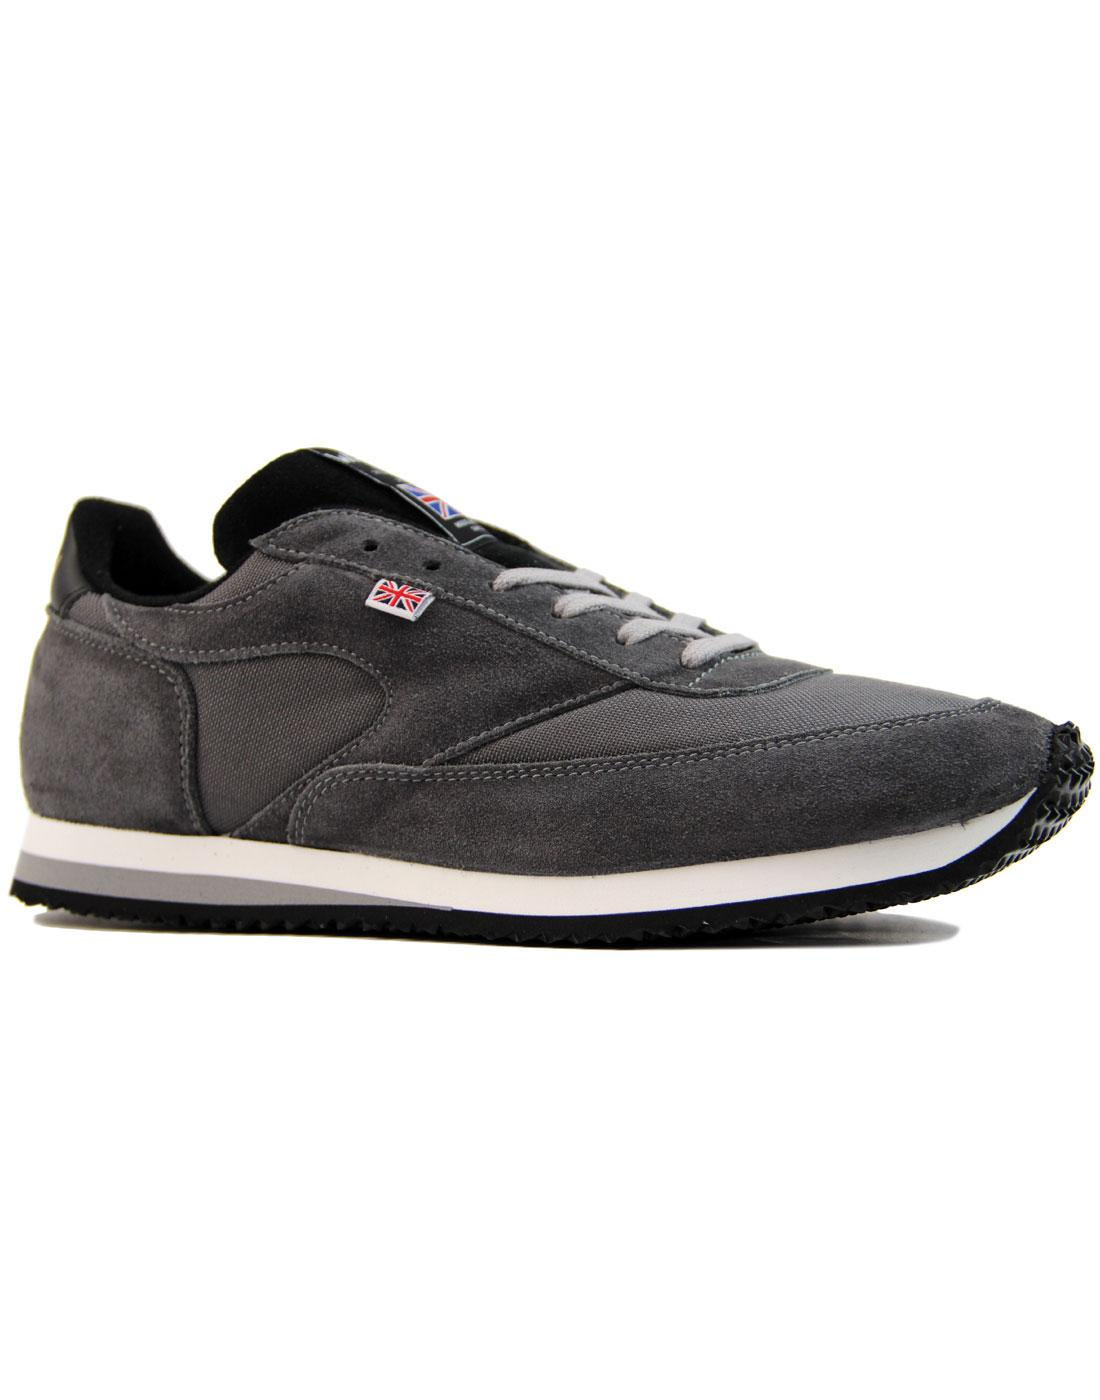 LA 84 WALSH Made in England Retro Trainers (G/B)